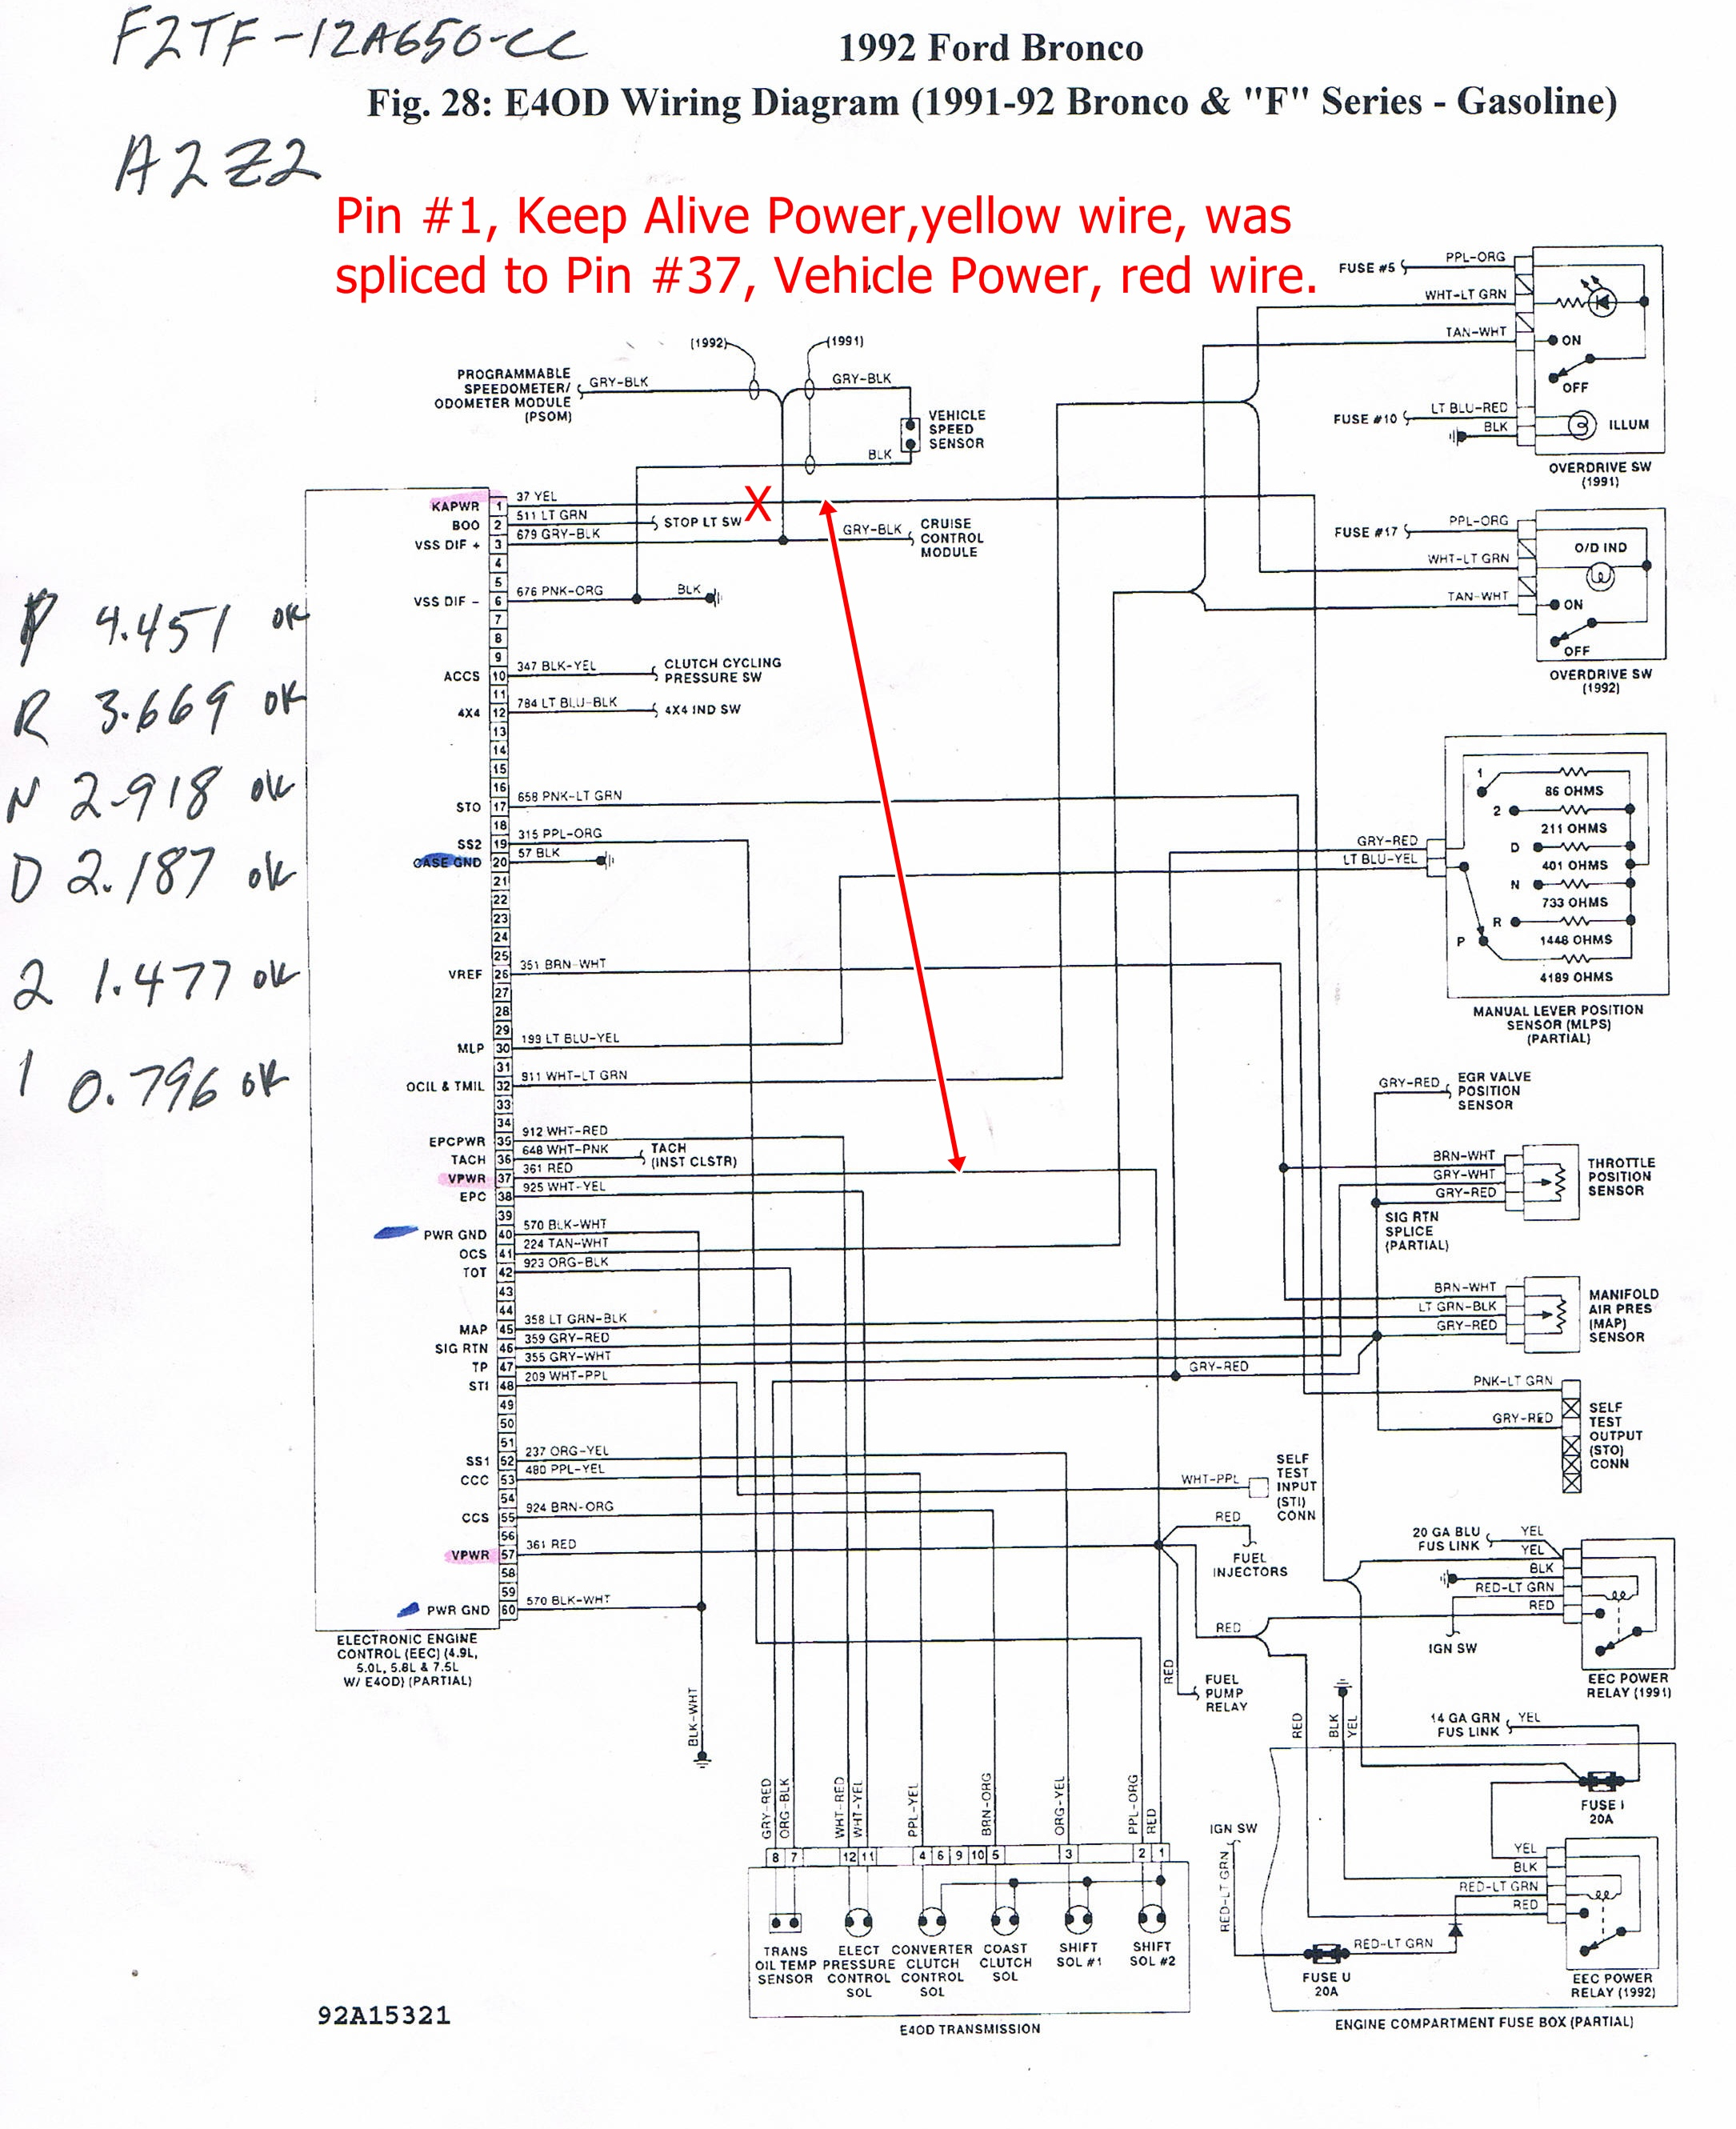 Lexus Sc300 Radio Wiring Library Pontiac Wave 2005 Diagram